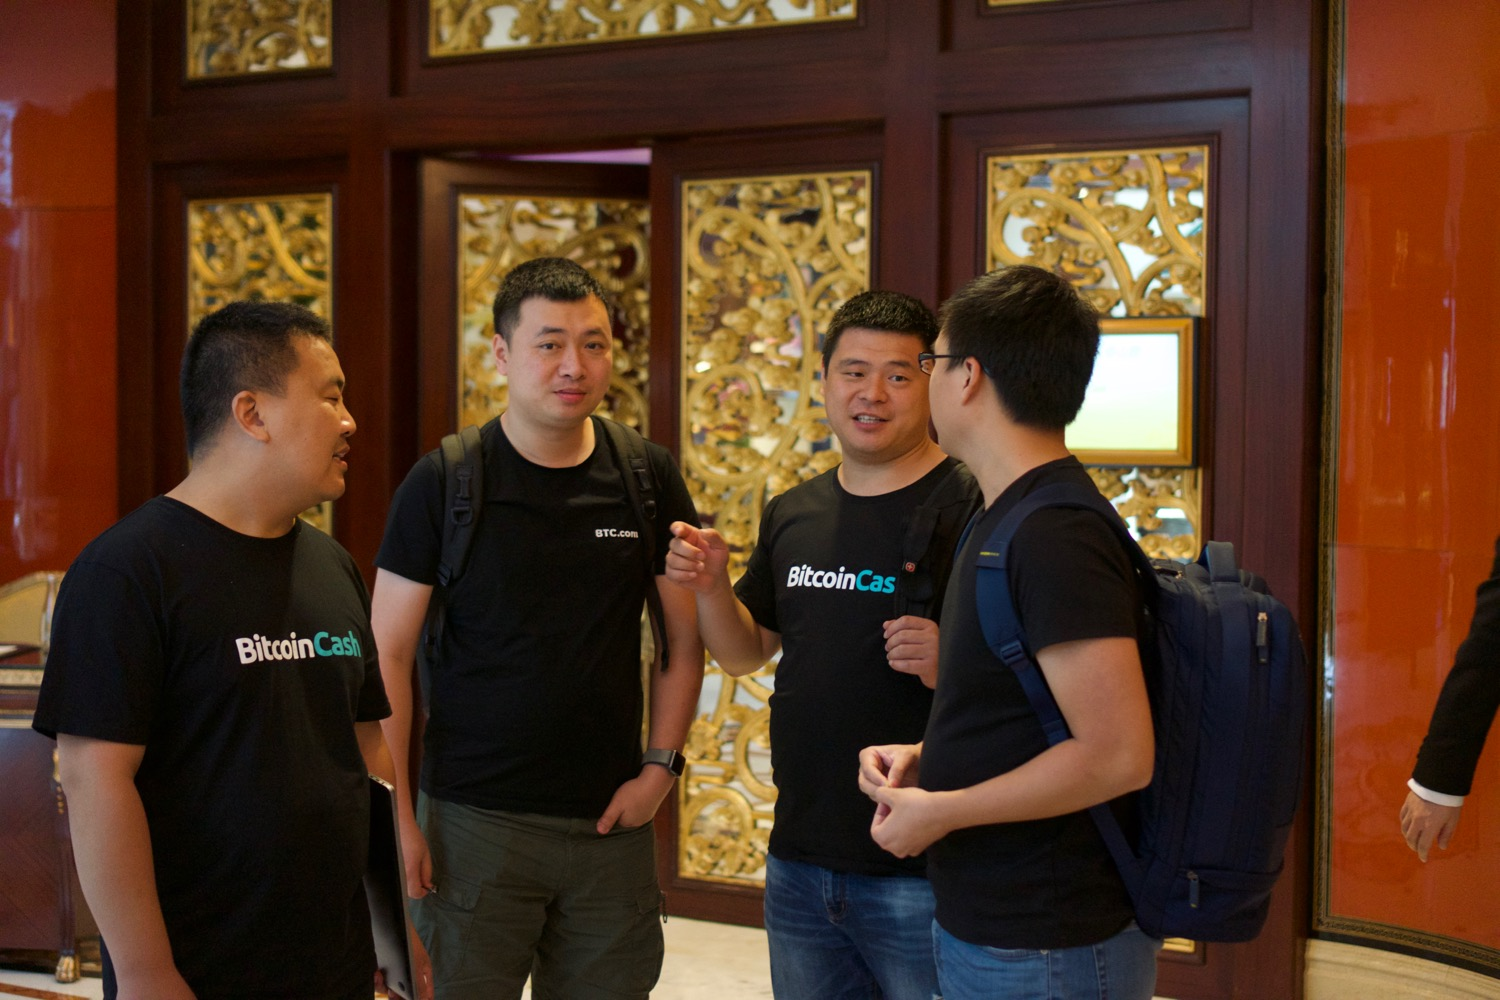 Bitcoin Cash Hong Kong Meeting